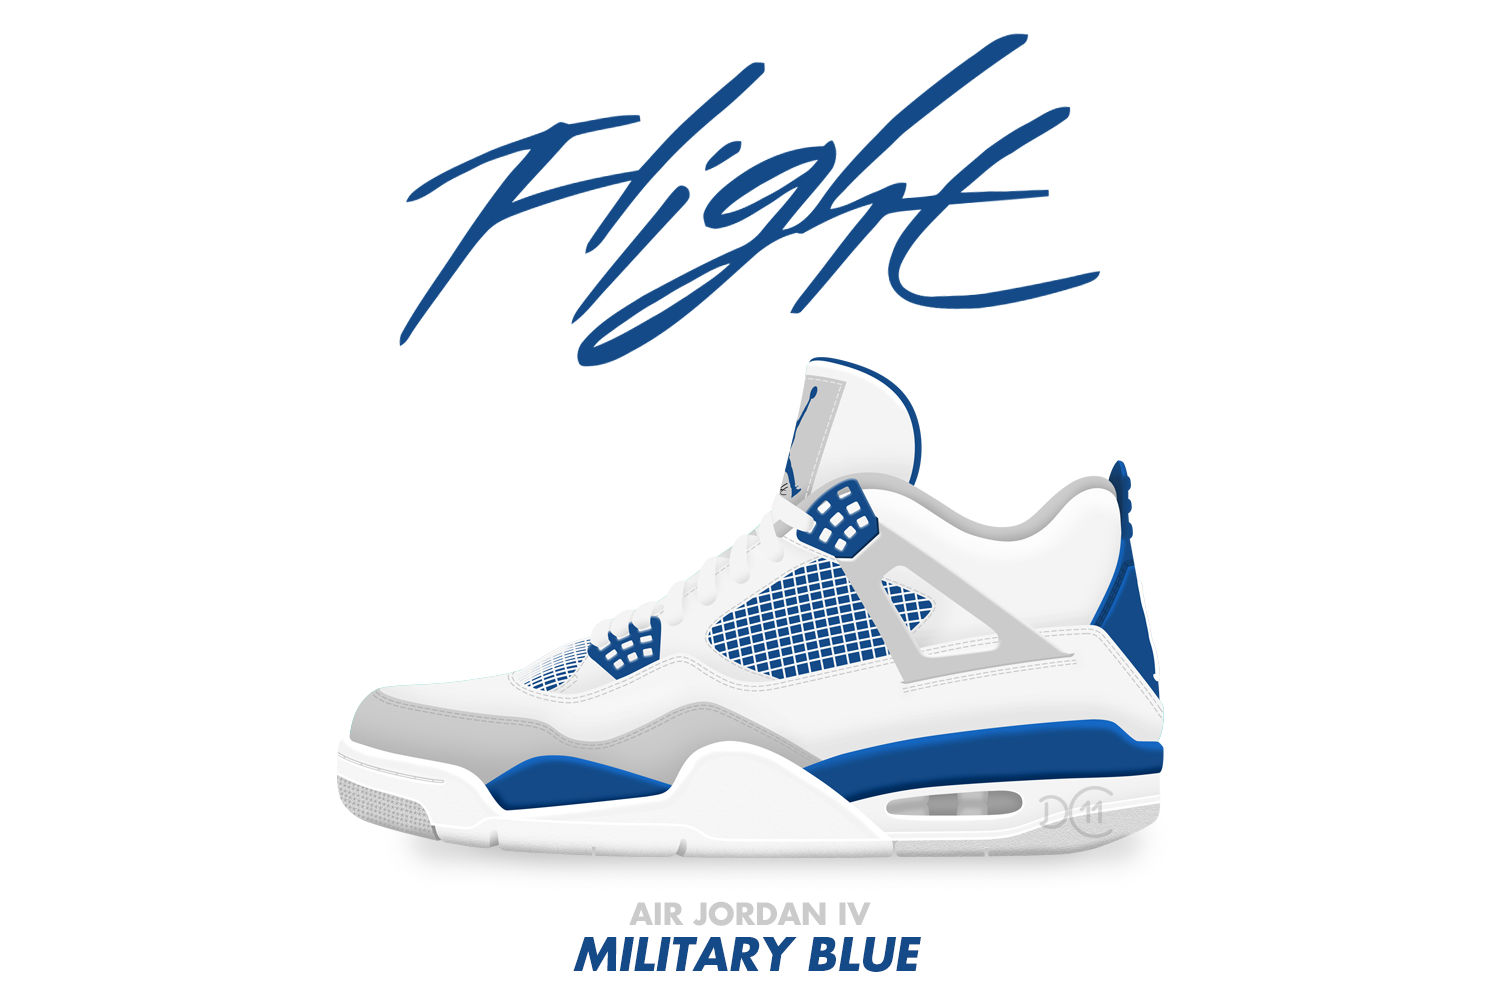 Air Jordan IV Military Blue By DCrossover11